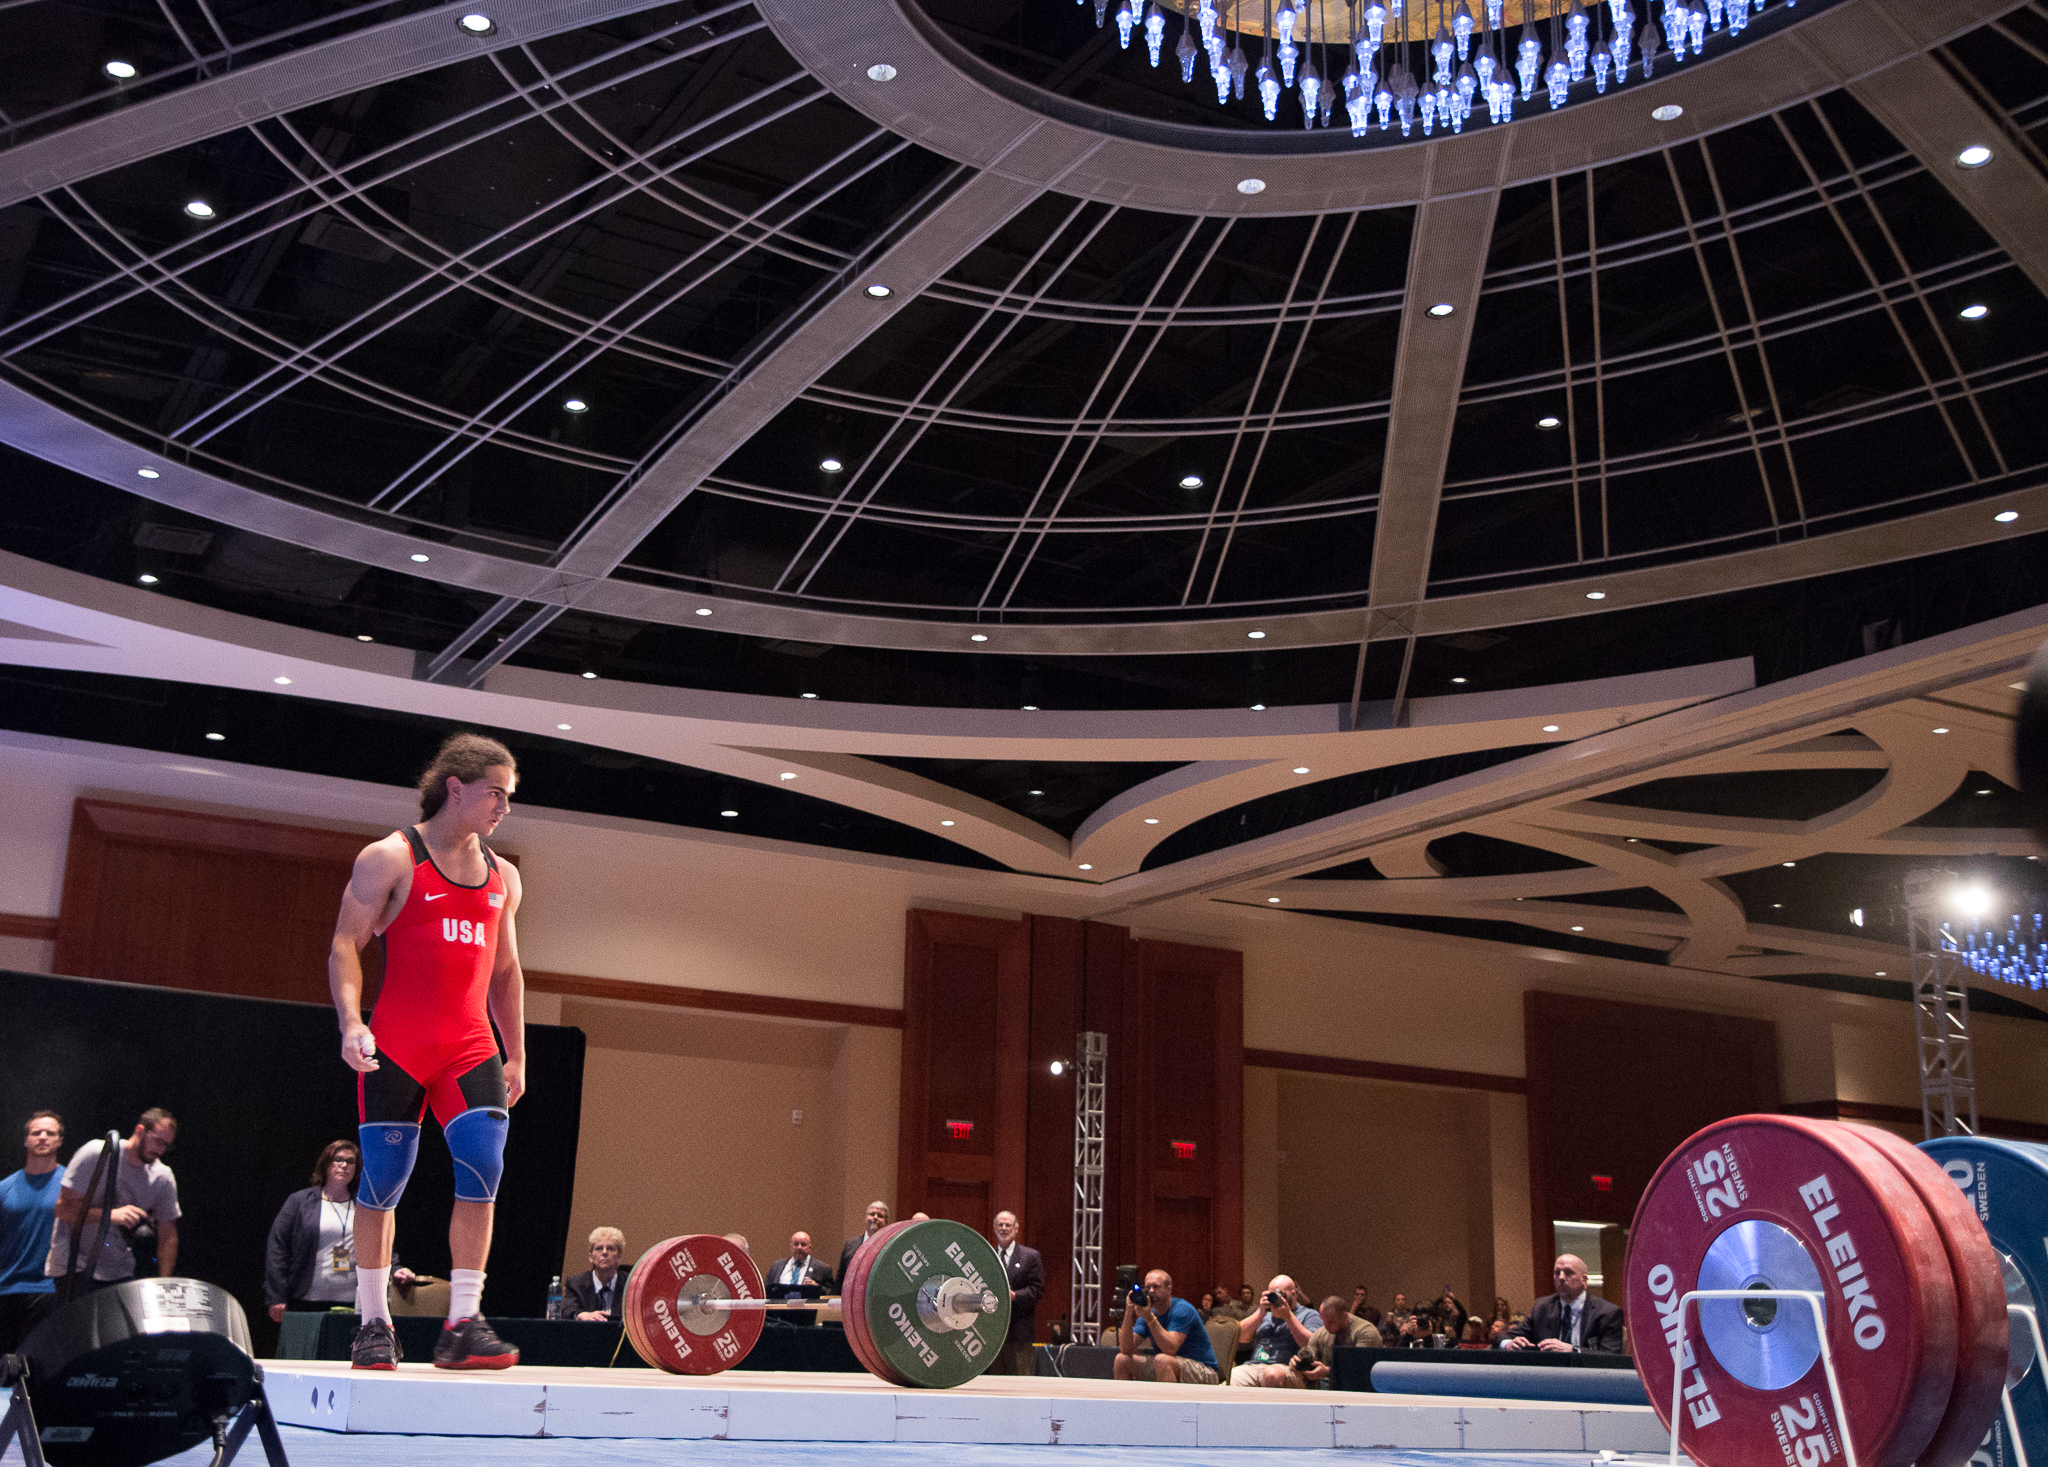 session-a-favorites-american-open-2016-weightlifting-photography (9 of 38).jpg